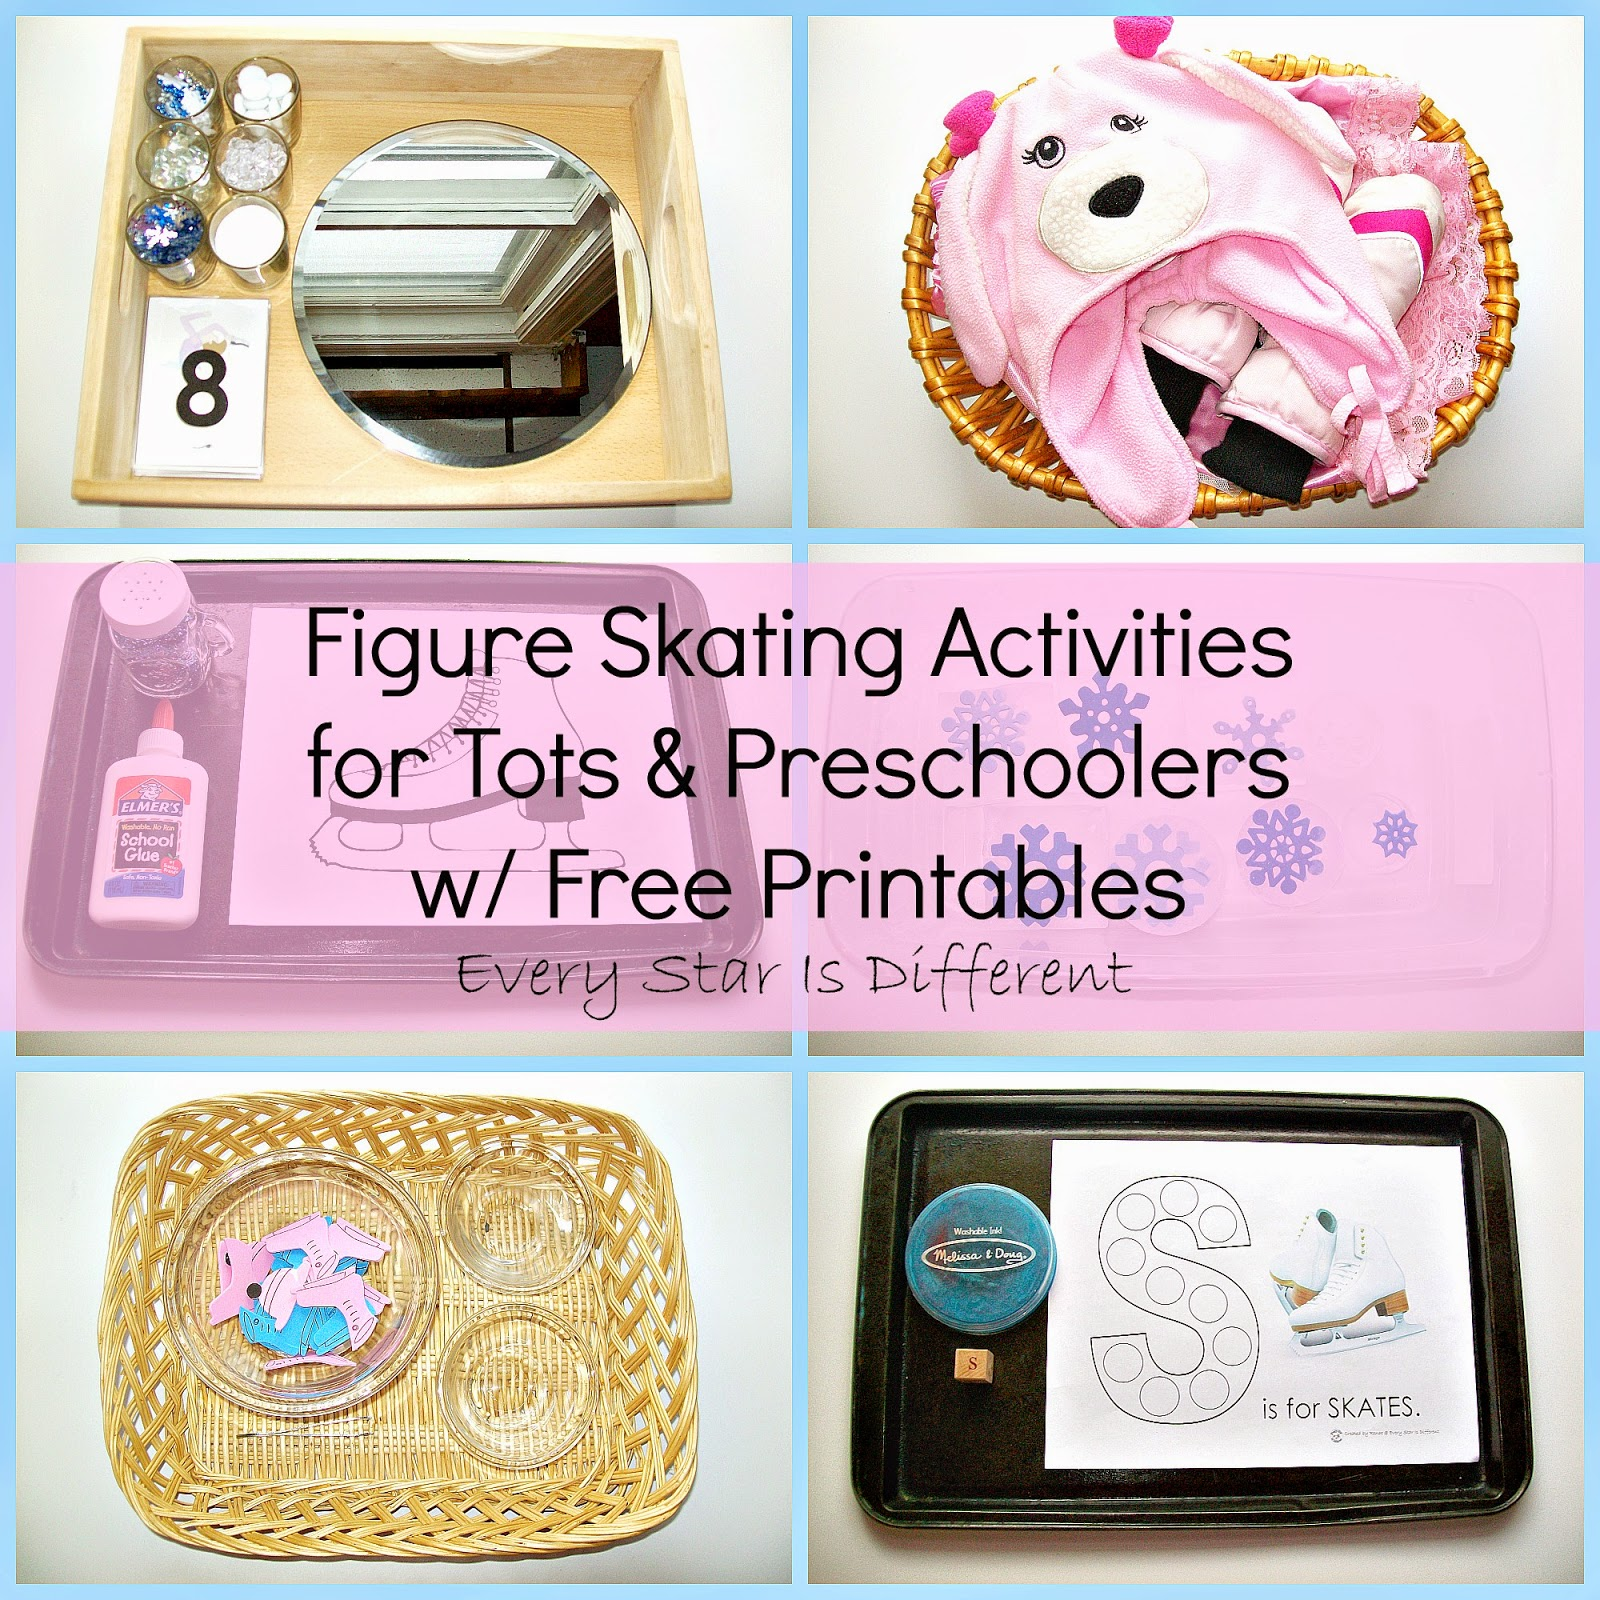 Figure Skating Activities for Tots and Preschoolers